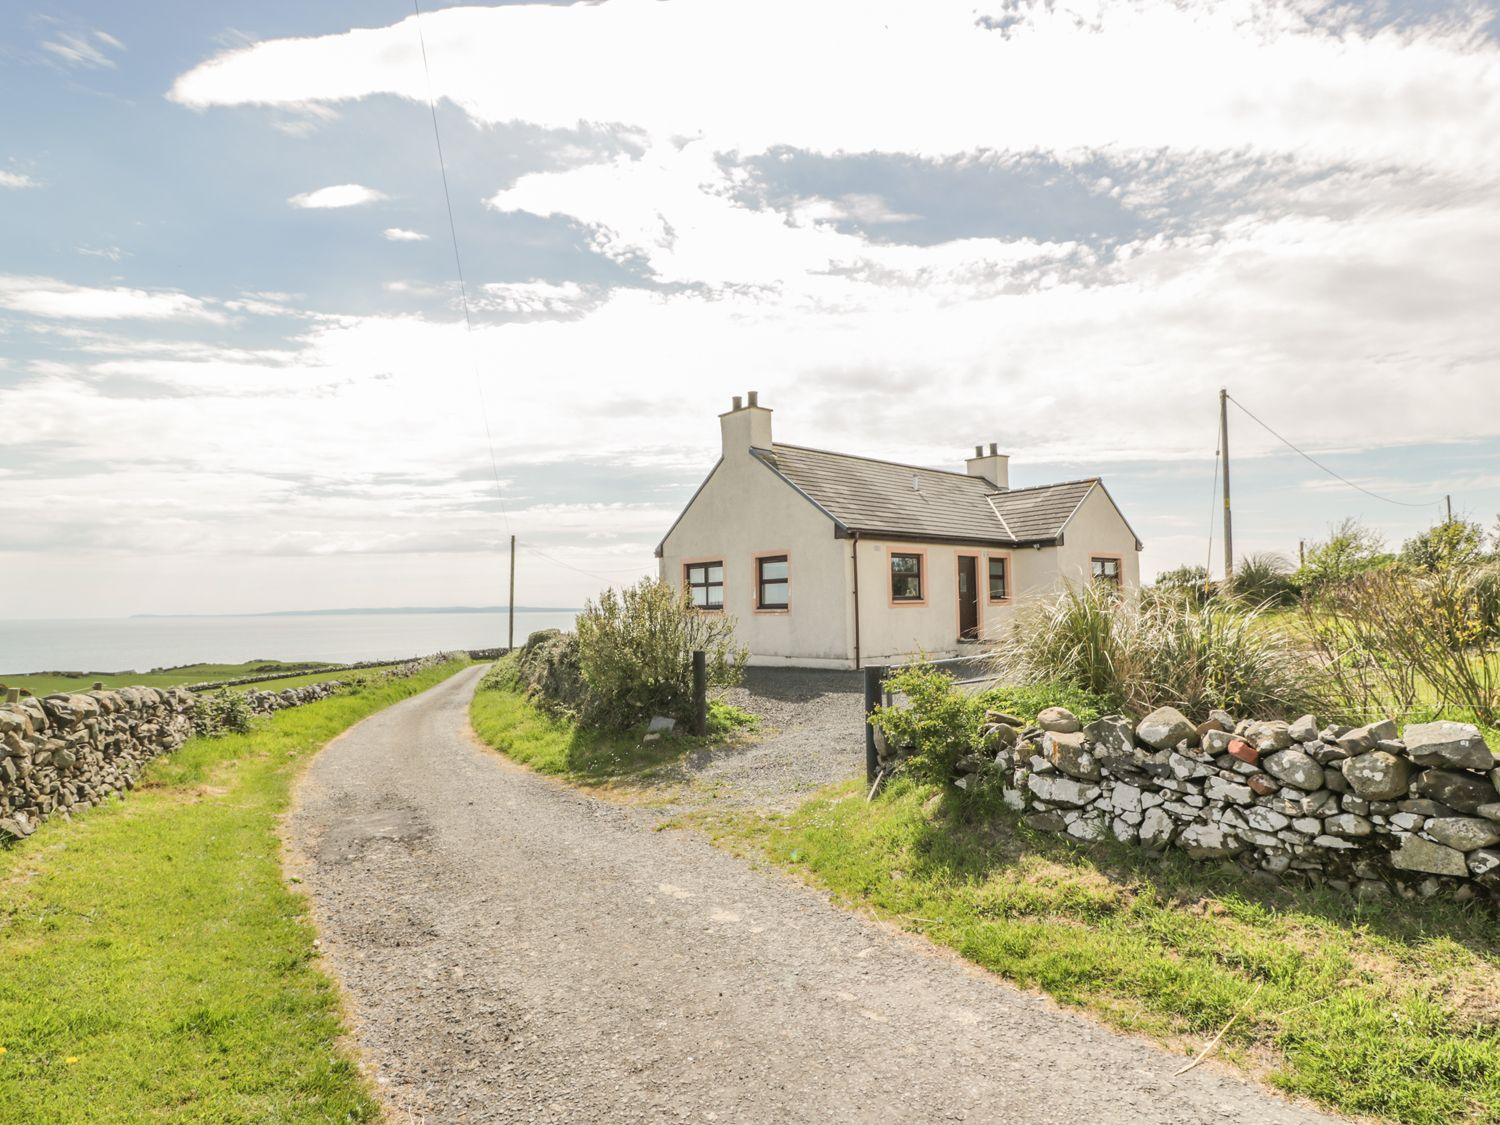 Craws Nest Bungalow, Dumfries and Galloway